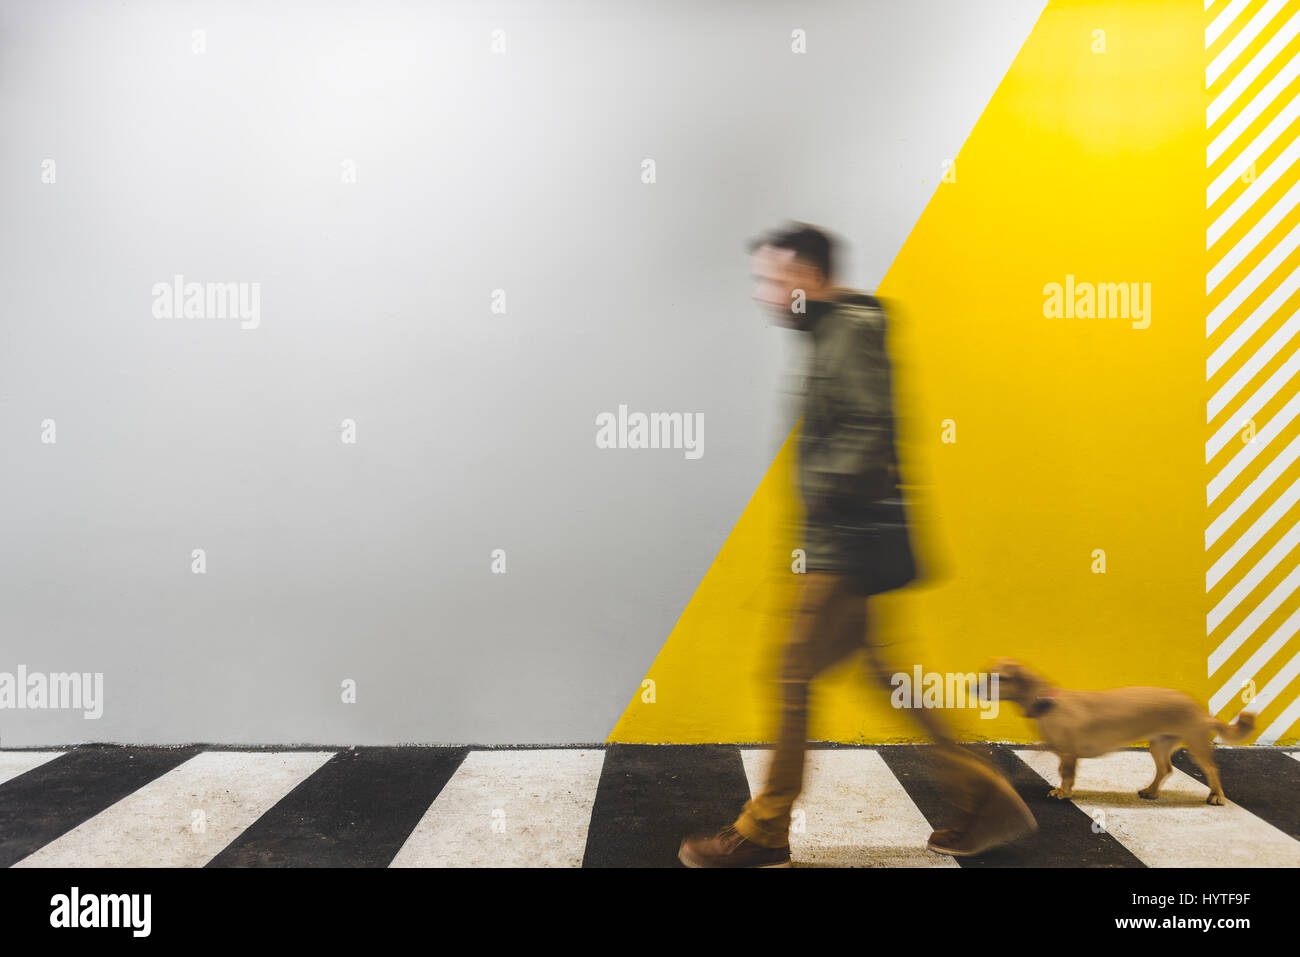 Man with a small yellow dog walking on underground passage mark with zebra crossing - Stock Image